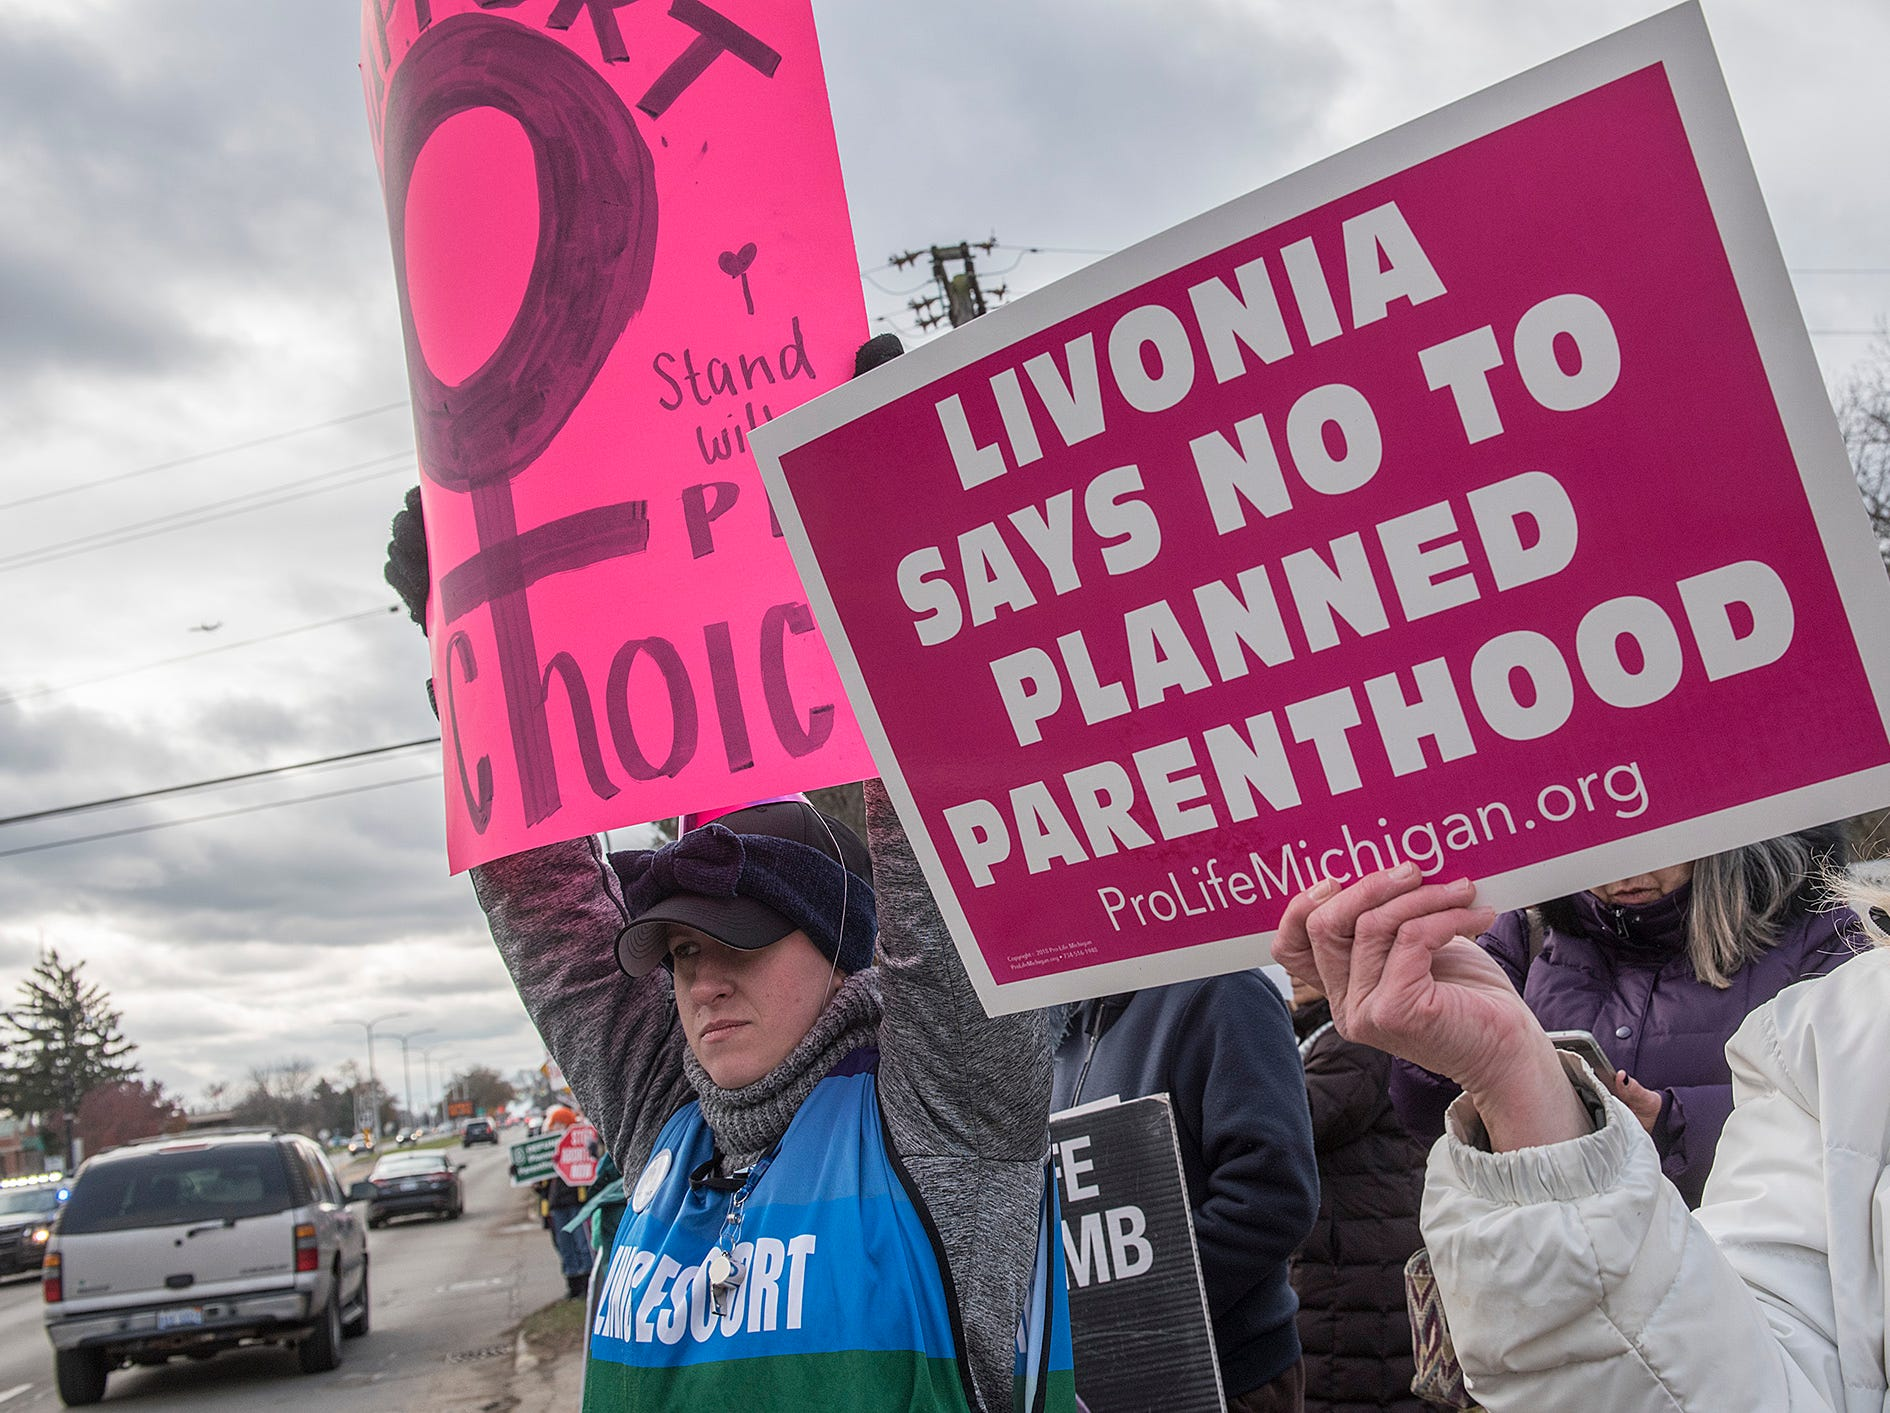 The Saturday morning protest at the Planned Parenthood facility drew people from both sides of the abortion issue.